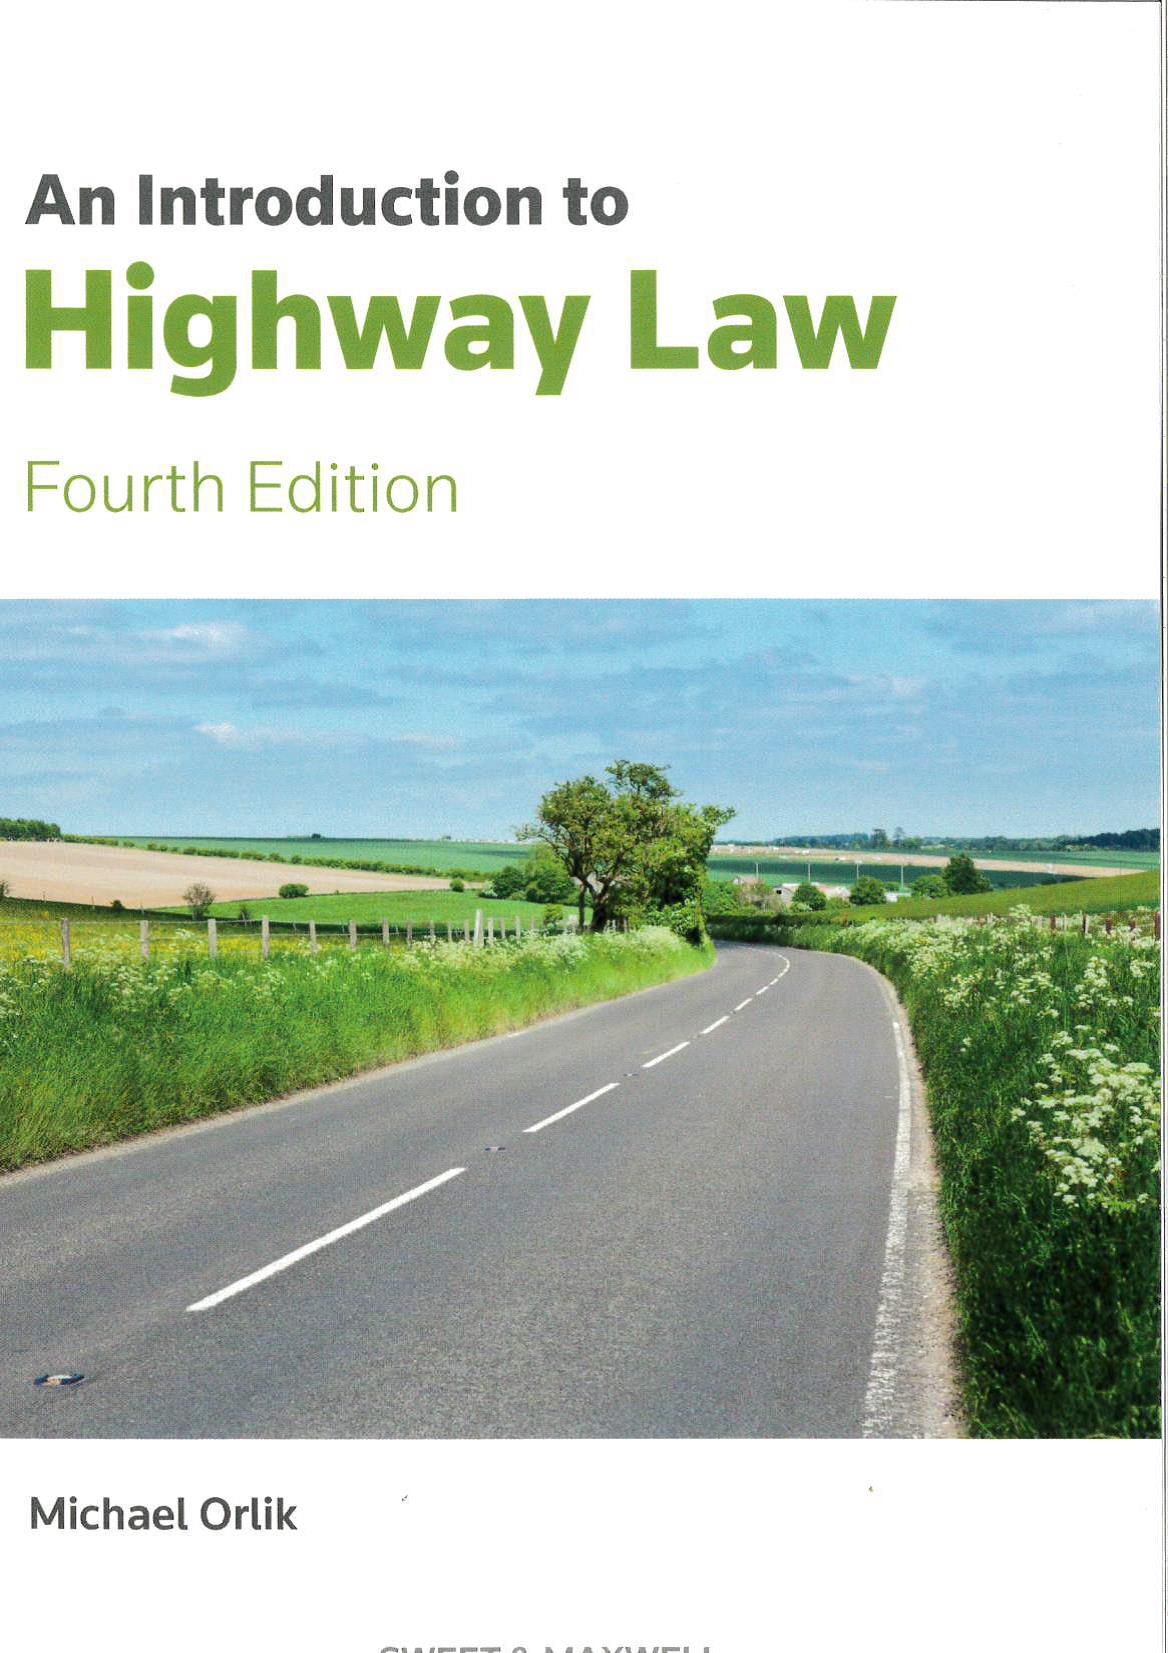 An Introduction to Highway Law (4th Edition)